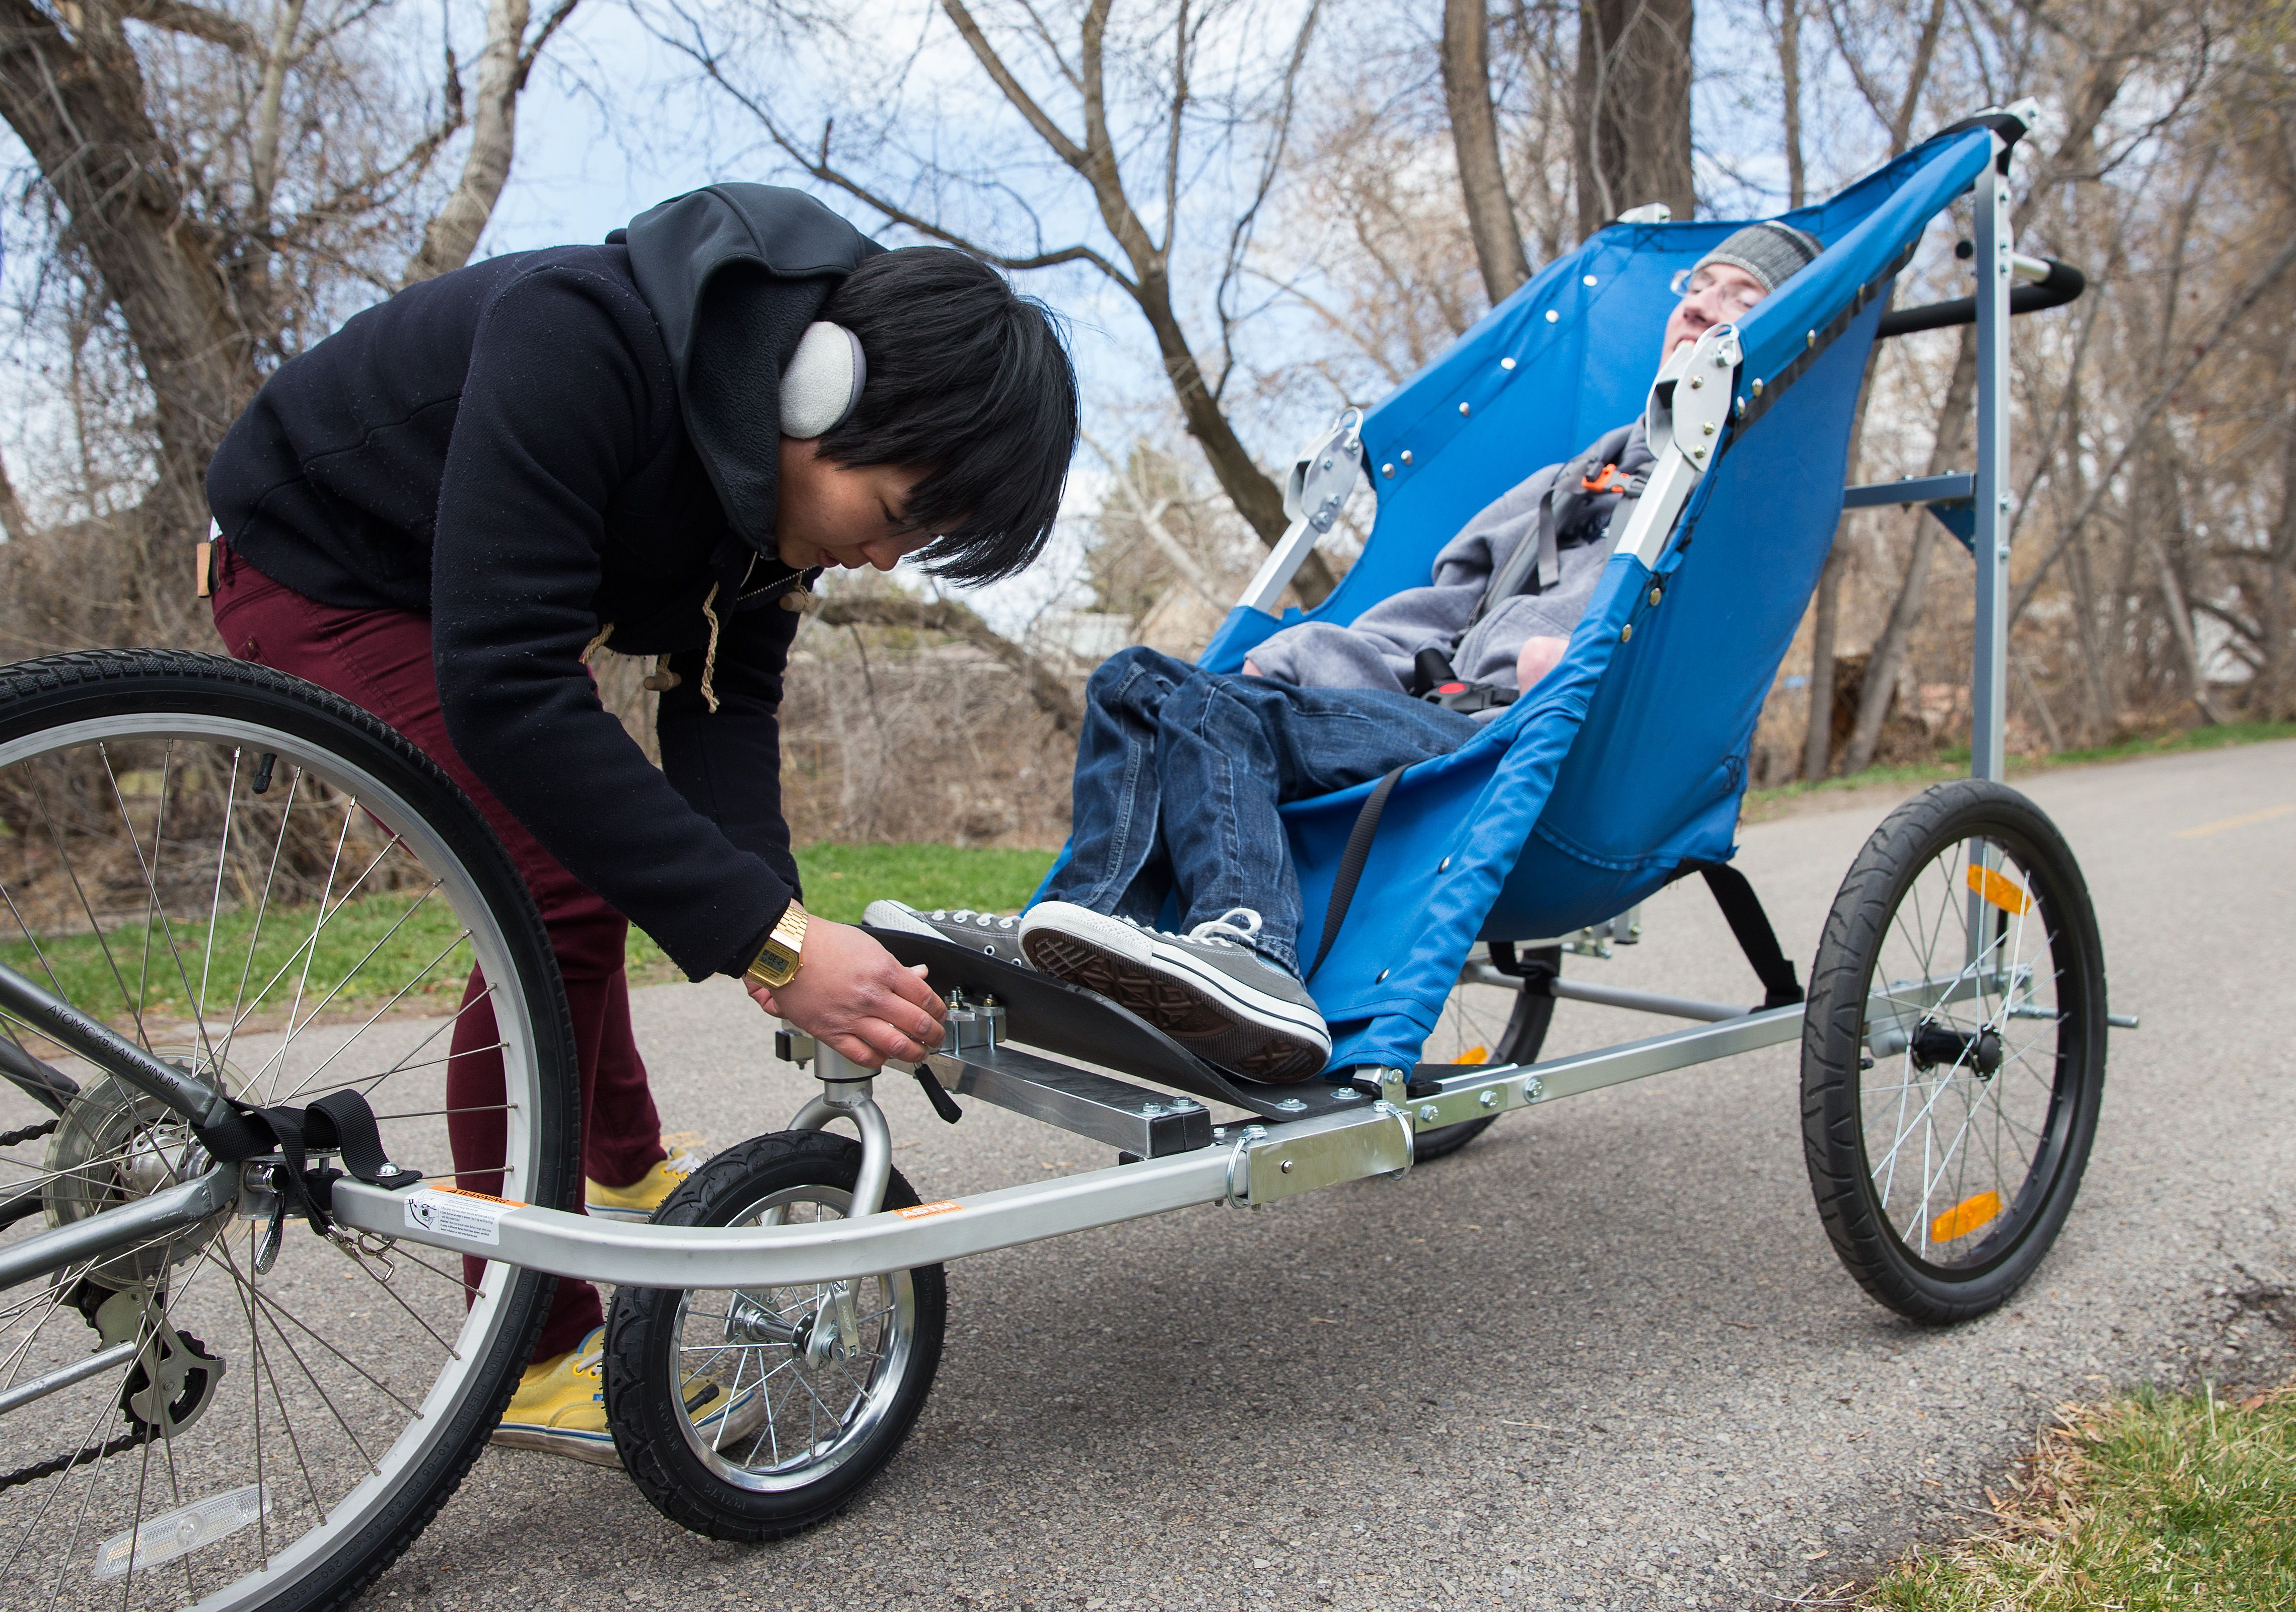 Engineering Students Build Adult Sized Bike Trailer For Professor S Son With Cerebral Palsy Jogging Stroller Engineering Student Cerebral Palsy